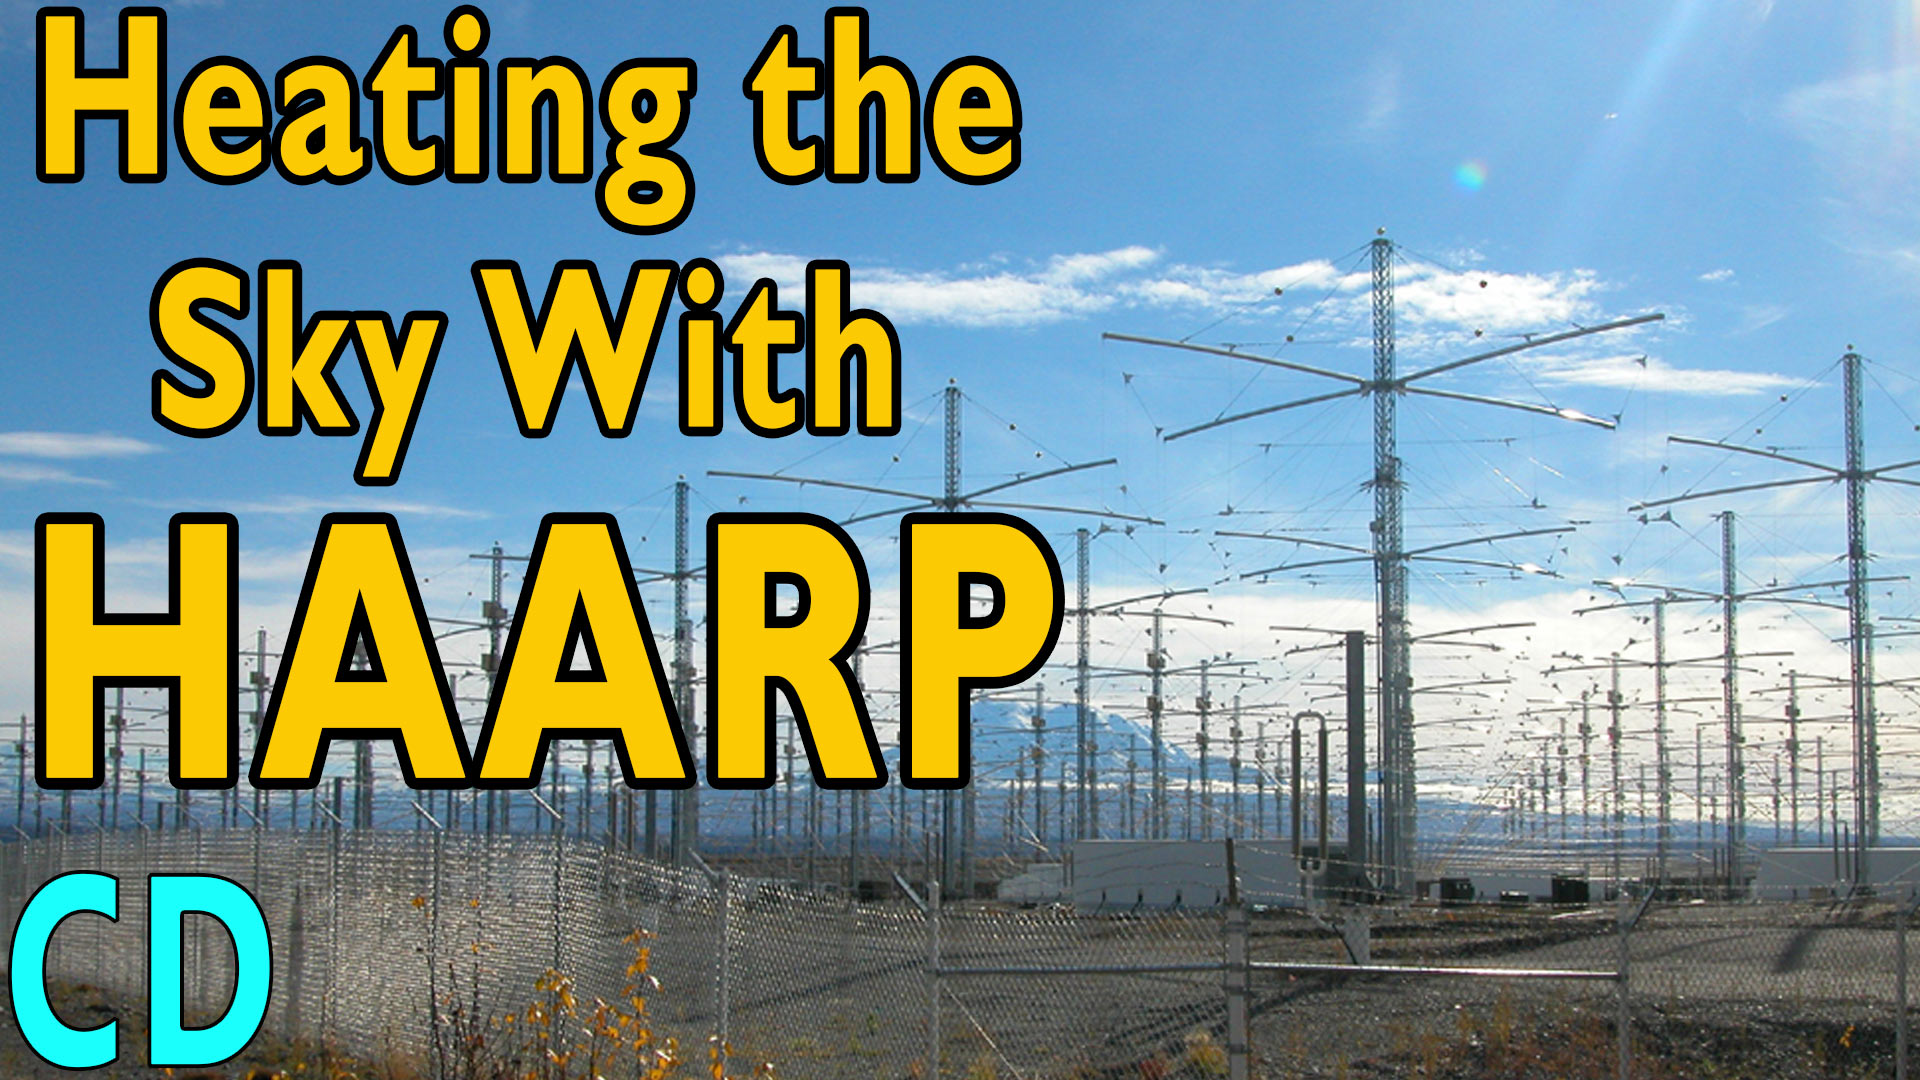 Why is Project HAARP so controversial?